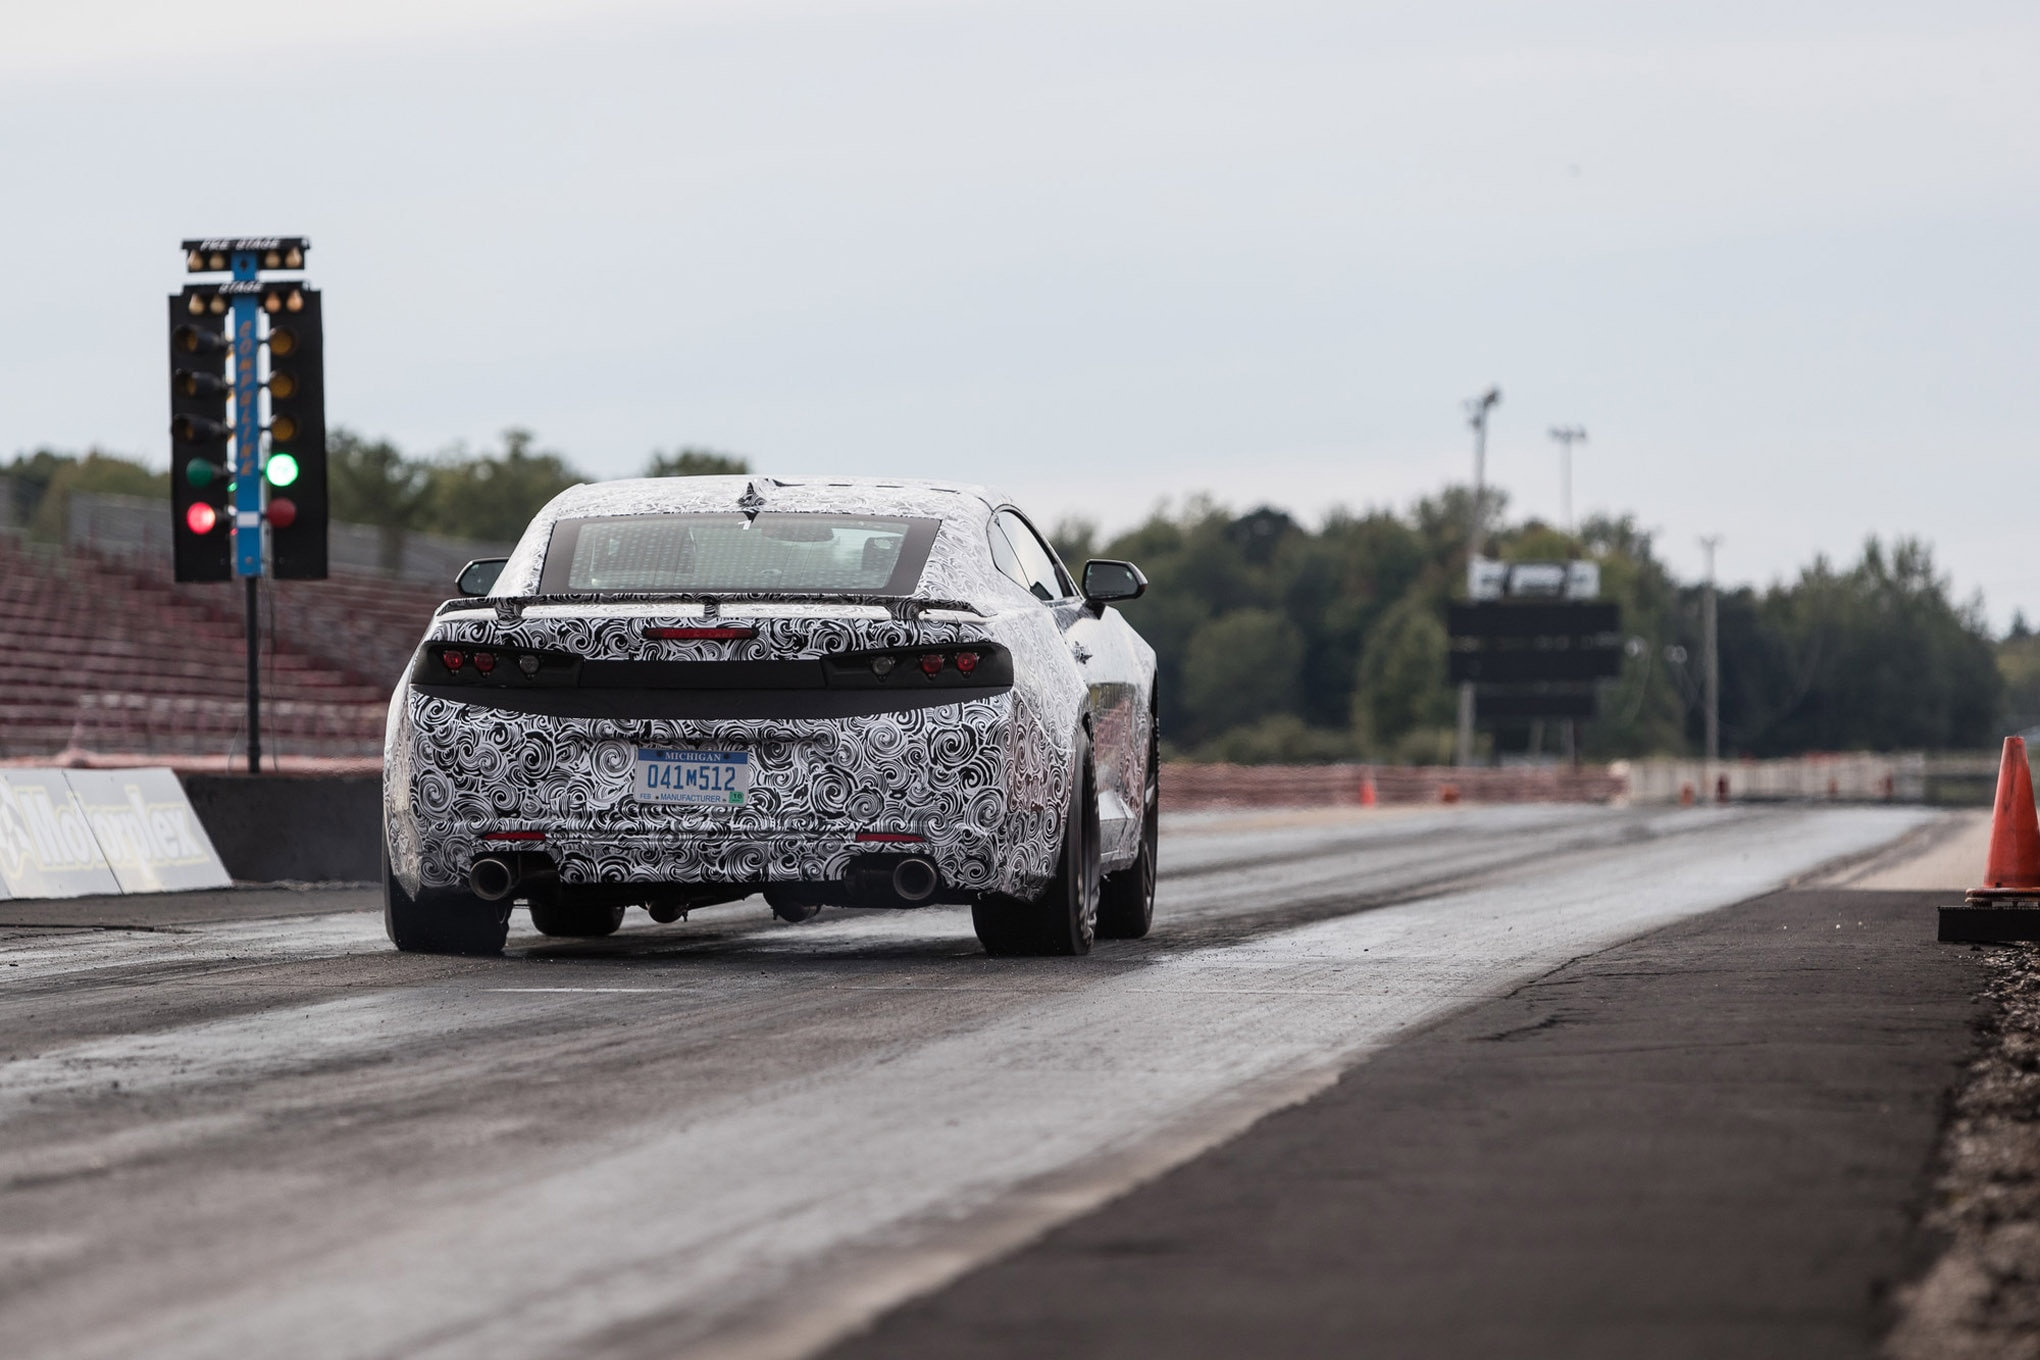 The new torque converter's stall speed is 4,200rpm, about 30 percent higher than a stock Camaro SS . The ability to launch harder, combined with additional grip, resulted in a best 60-foot time of 1.425 seconds.